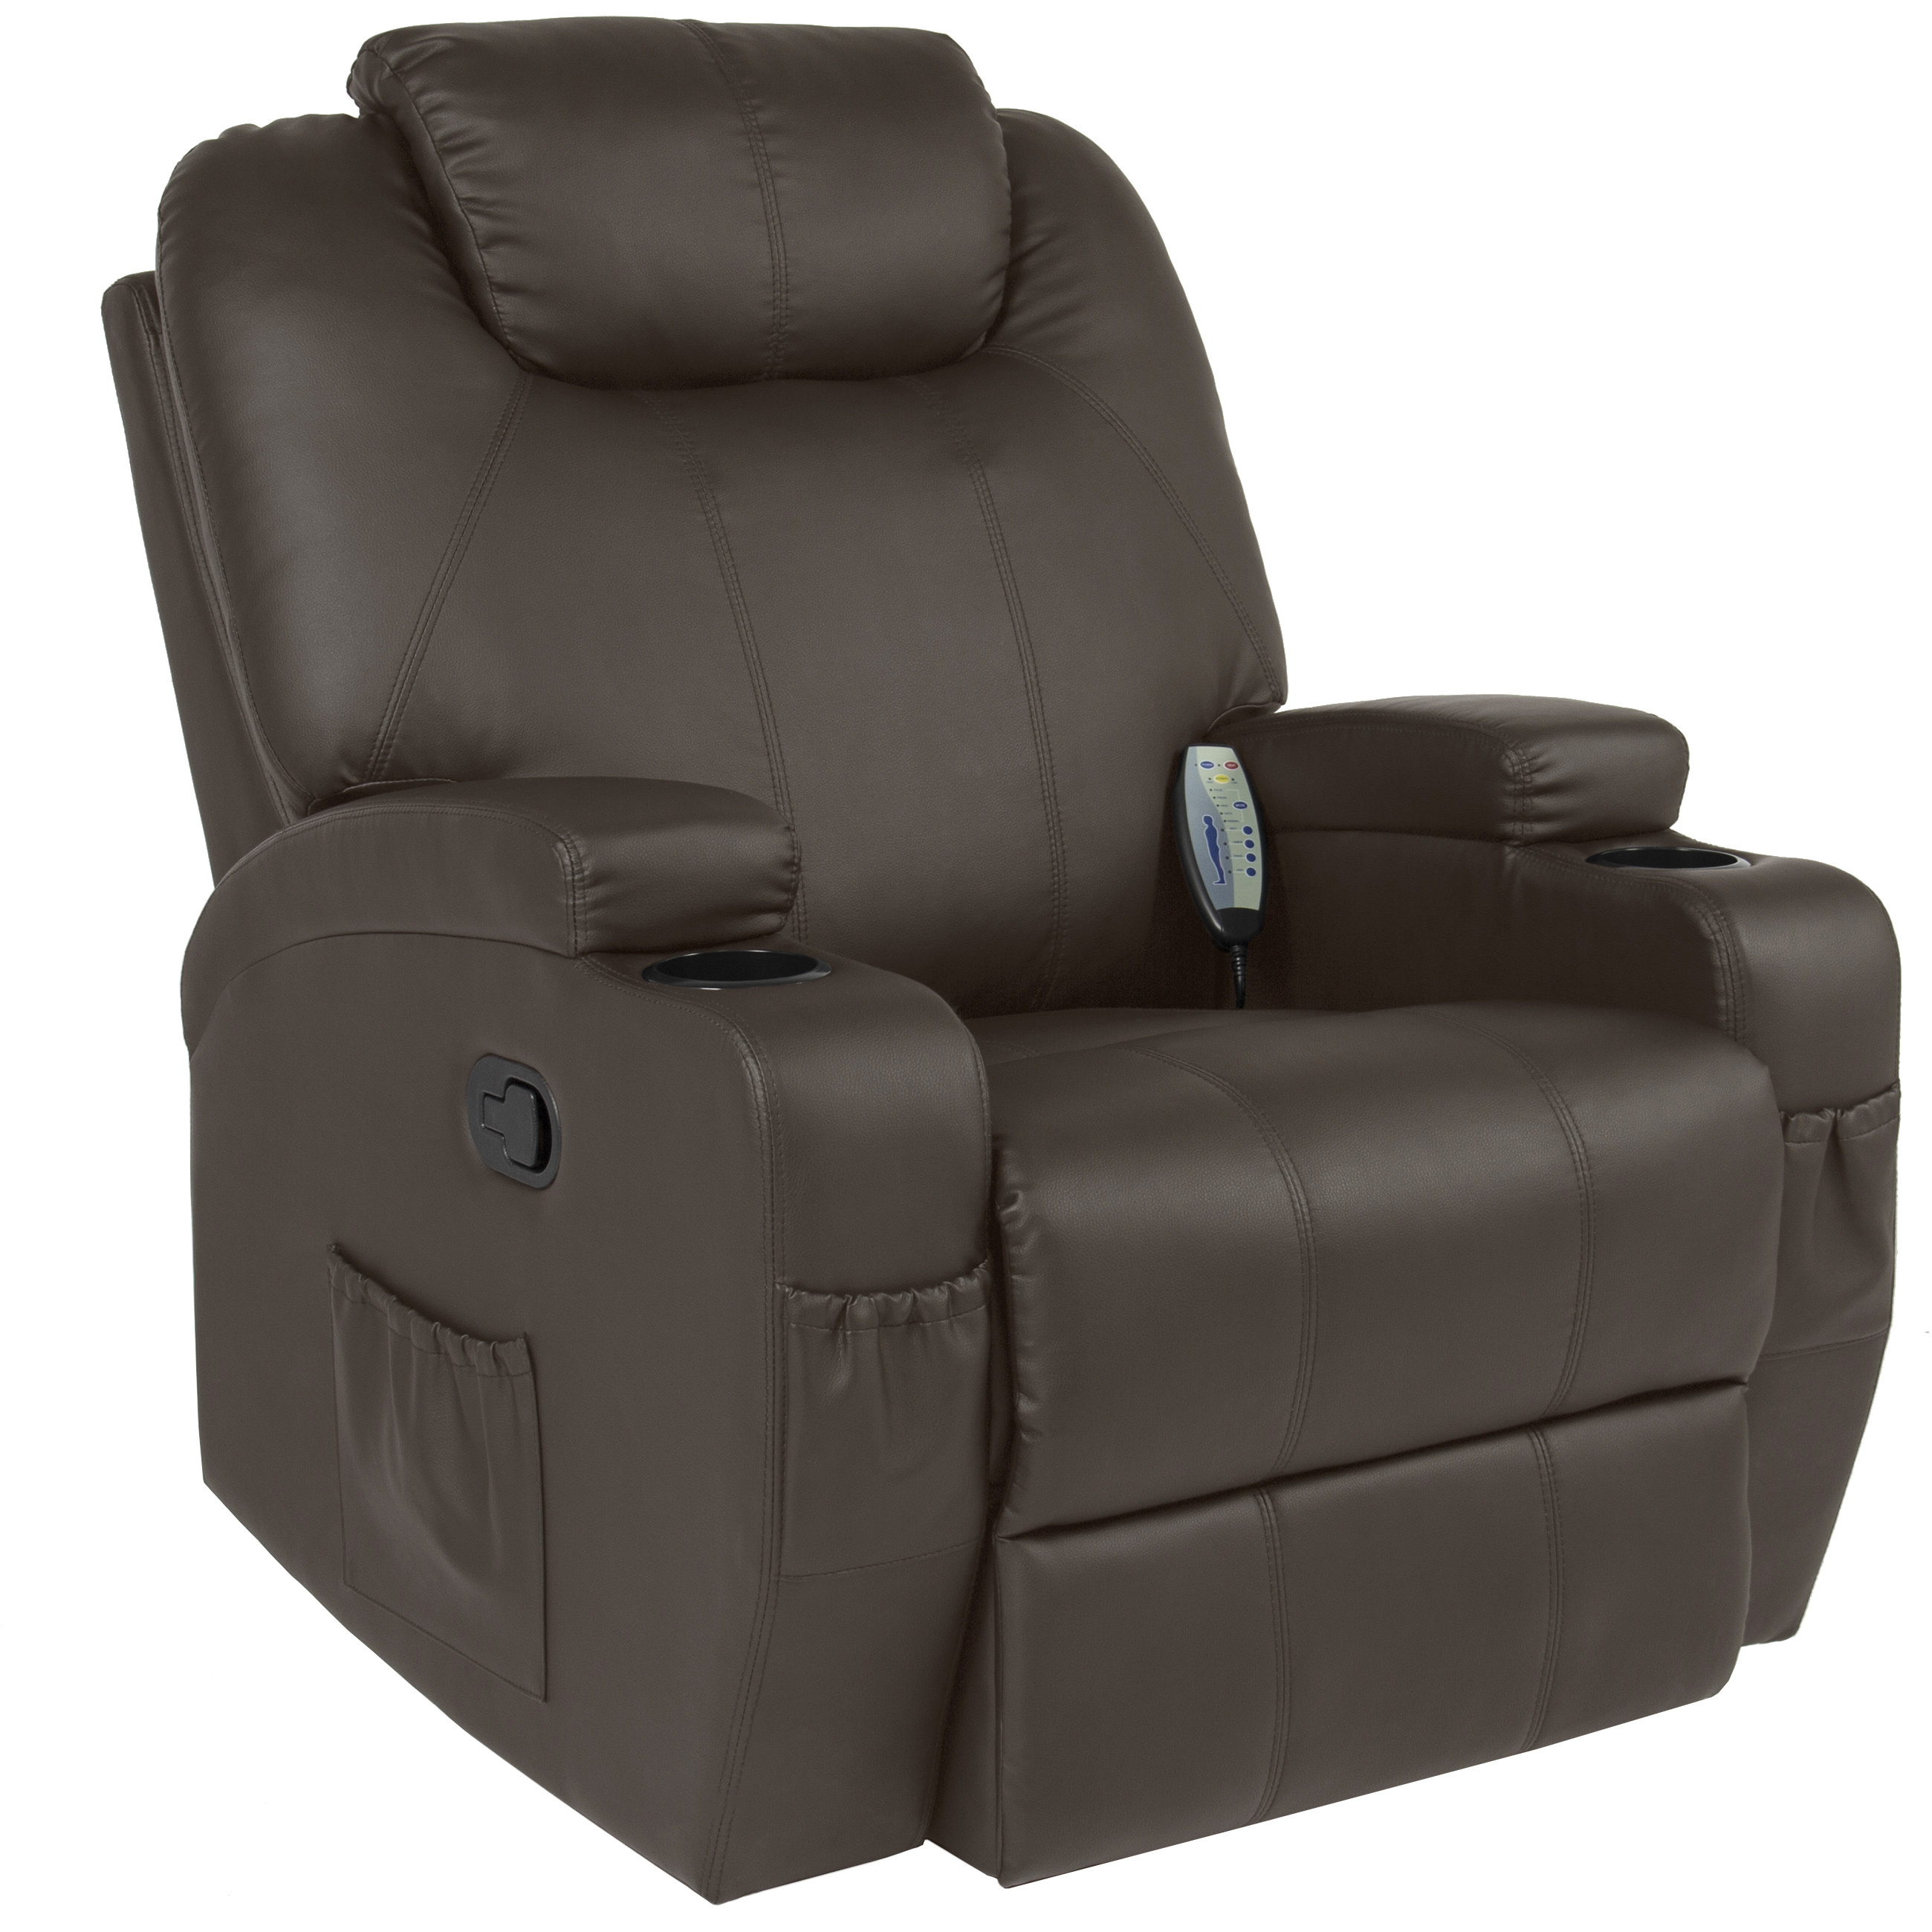 Best Choice Products Executive PU Leather Swivel Electric Massage Recliner Chair w/ Remote Control, 5 Heat & Vibration Modes, 2 Cup Holders, 4 Pockets - Brown